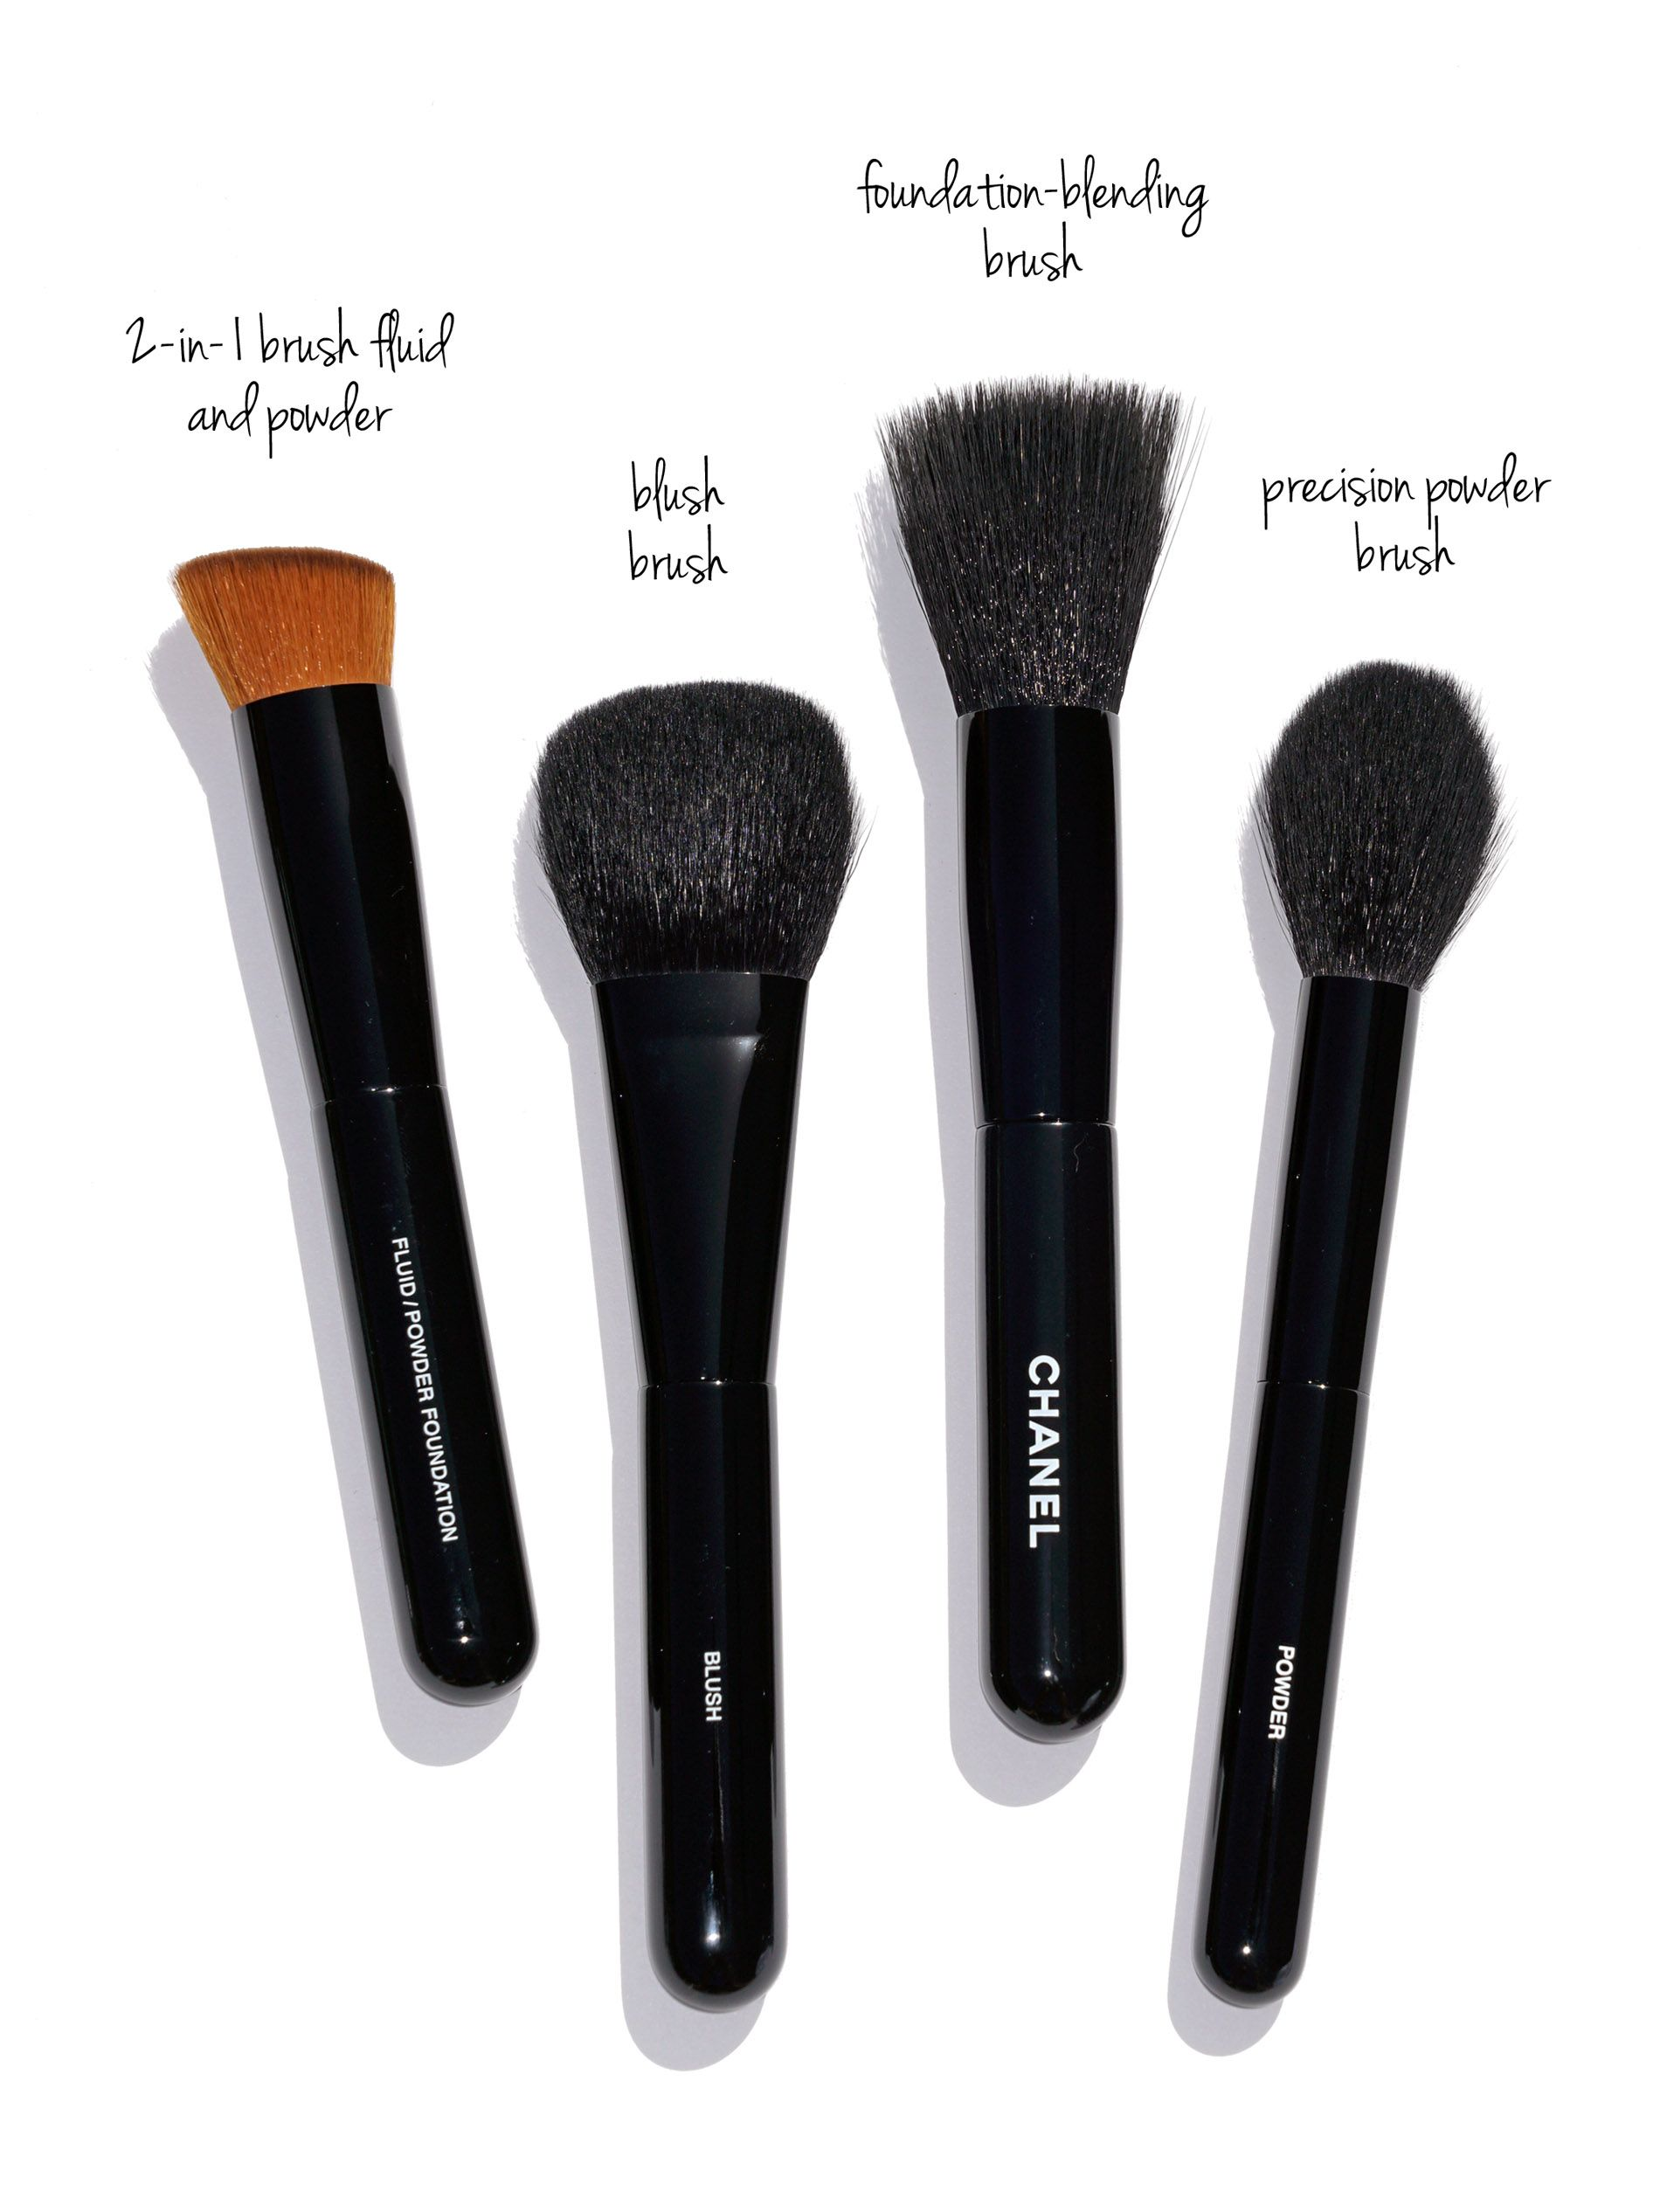 Chanel Makeup Brushes New Design Chanel brushes